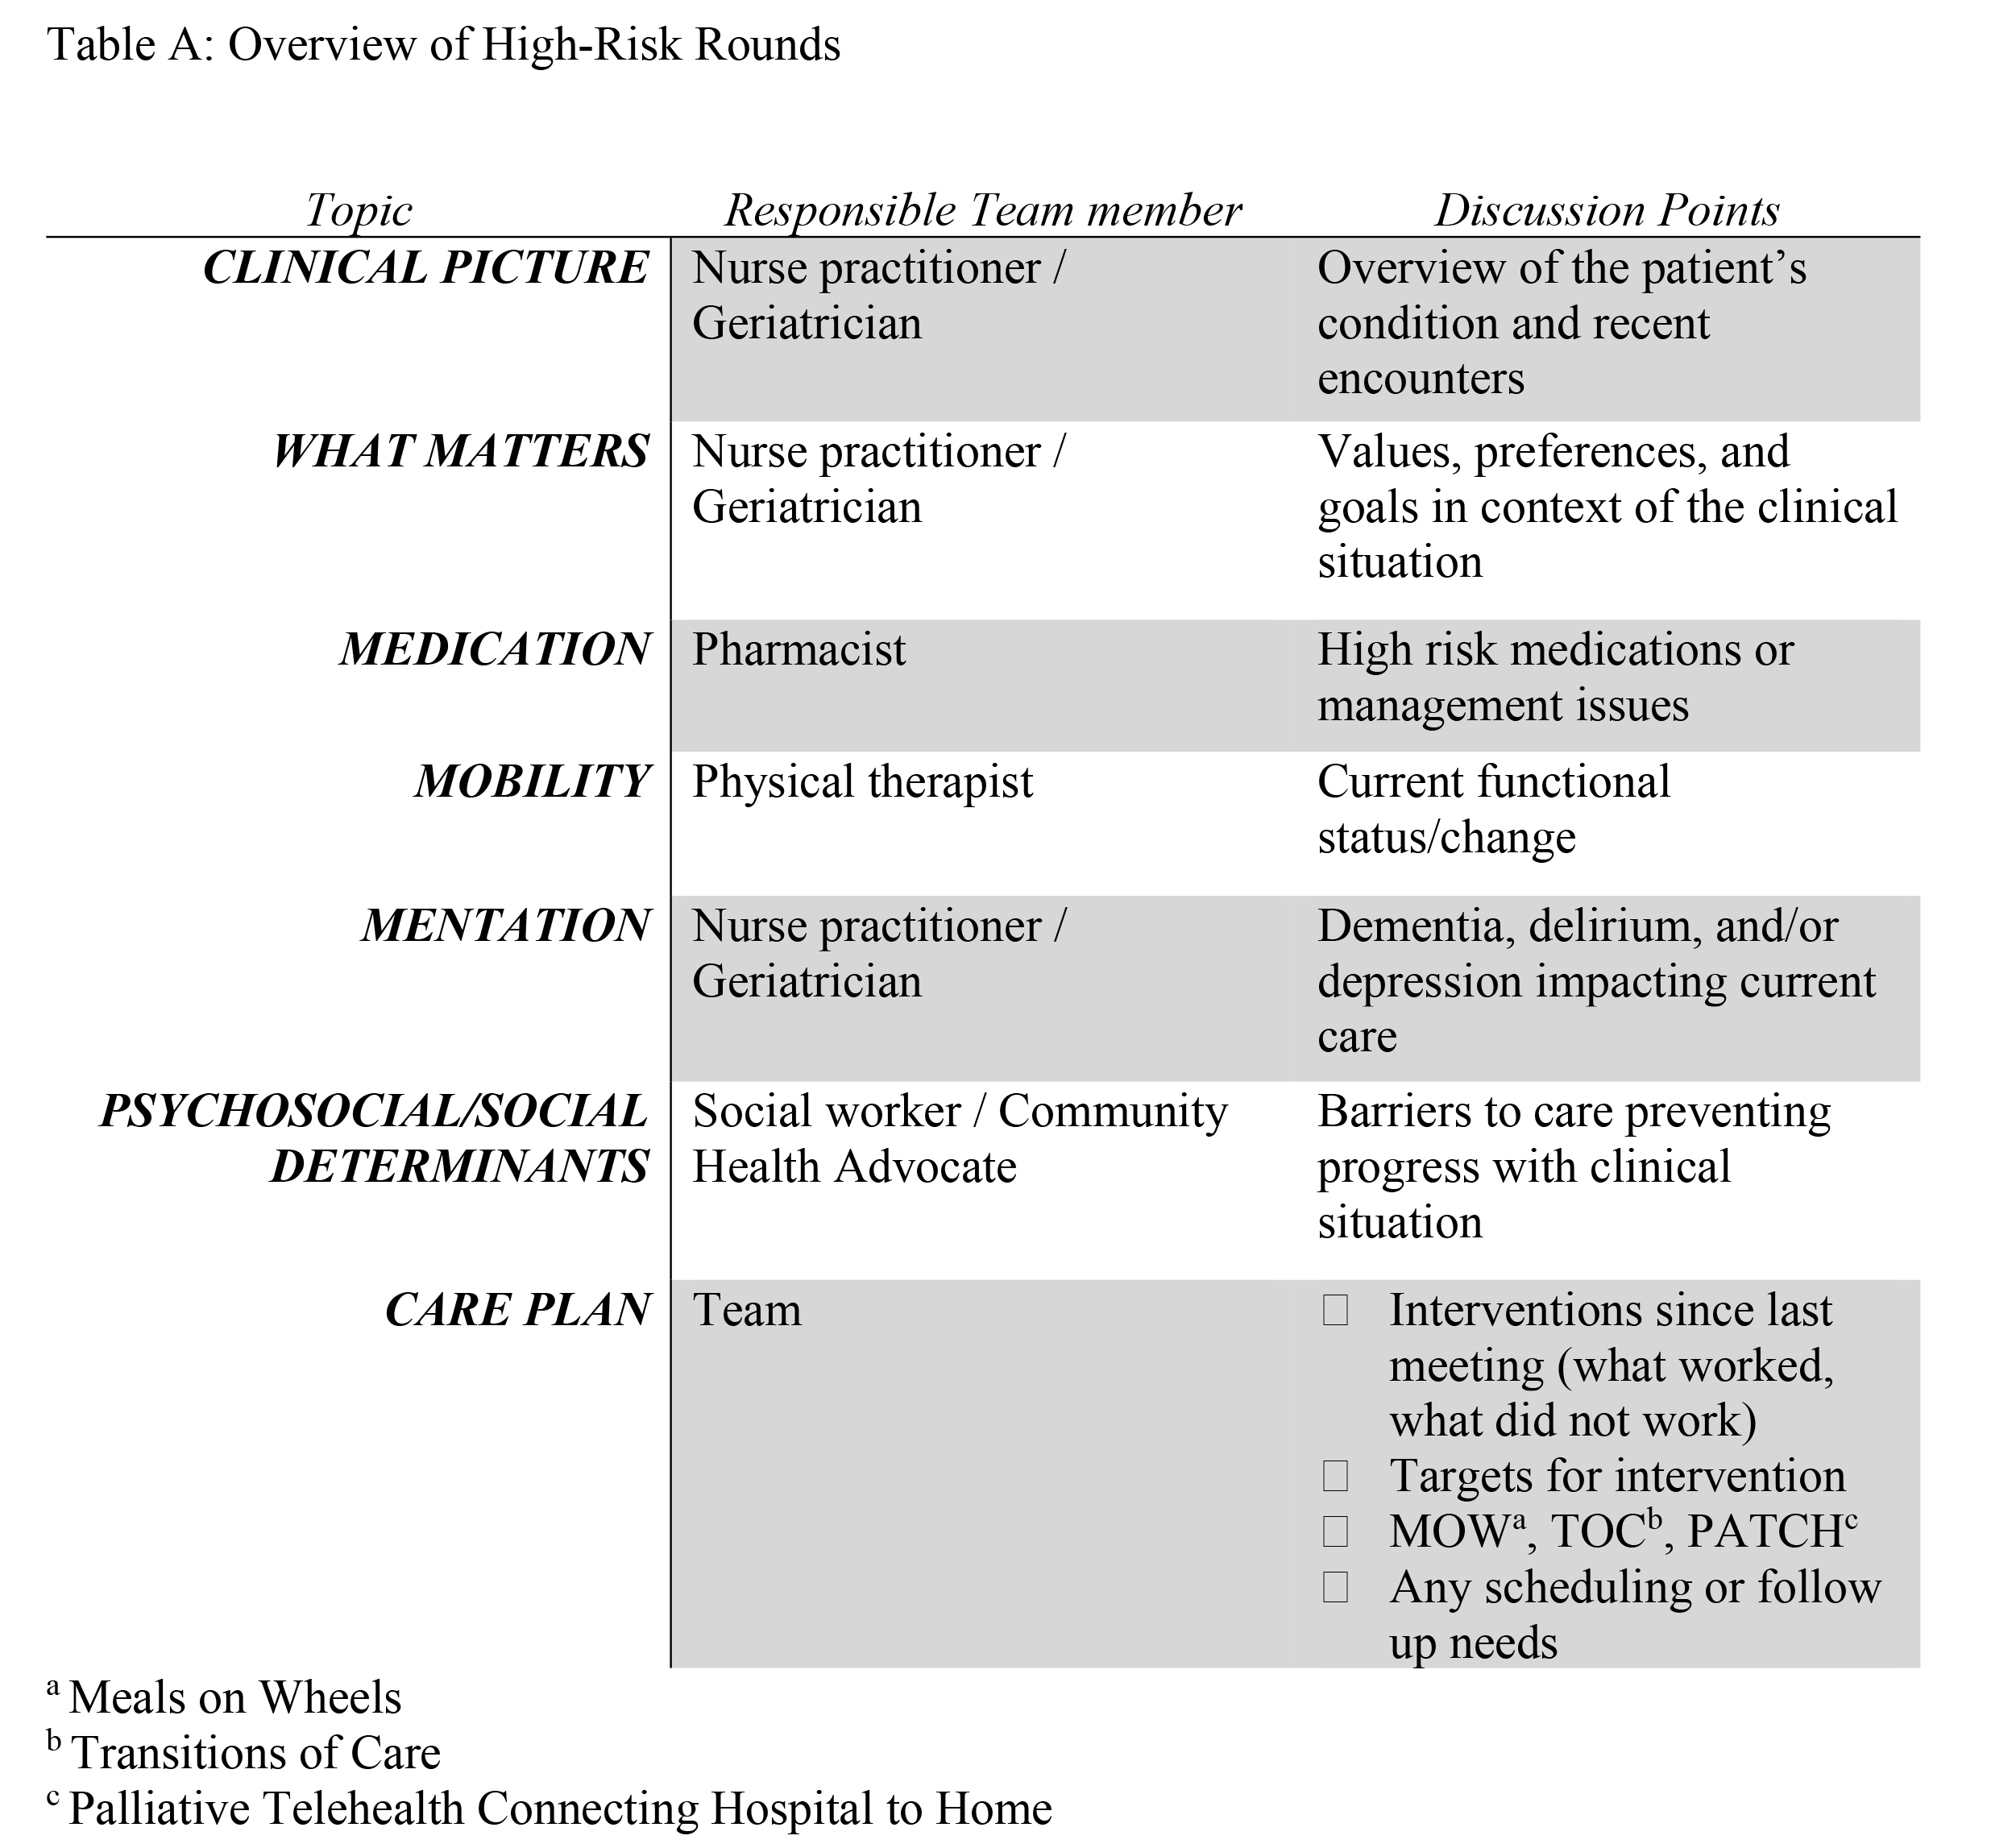 Overview of High-Risk Rounds